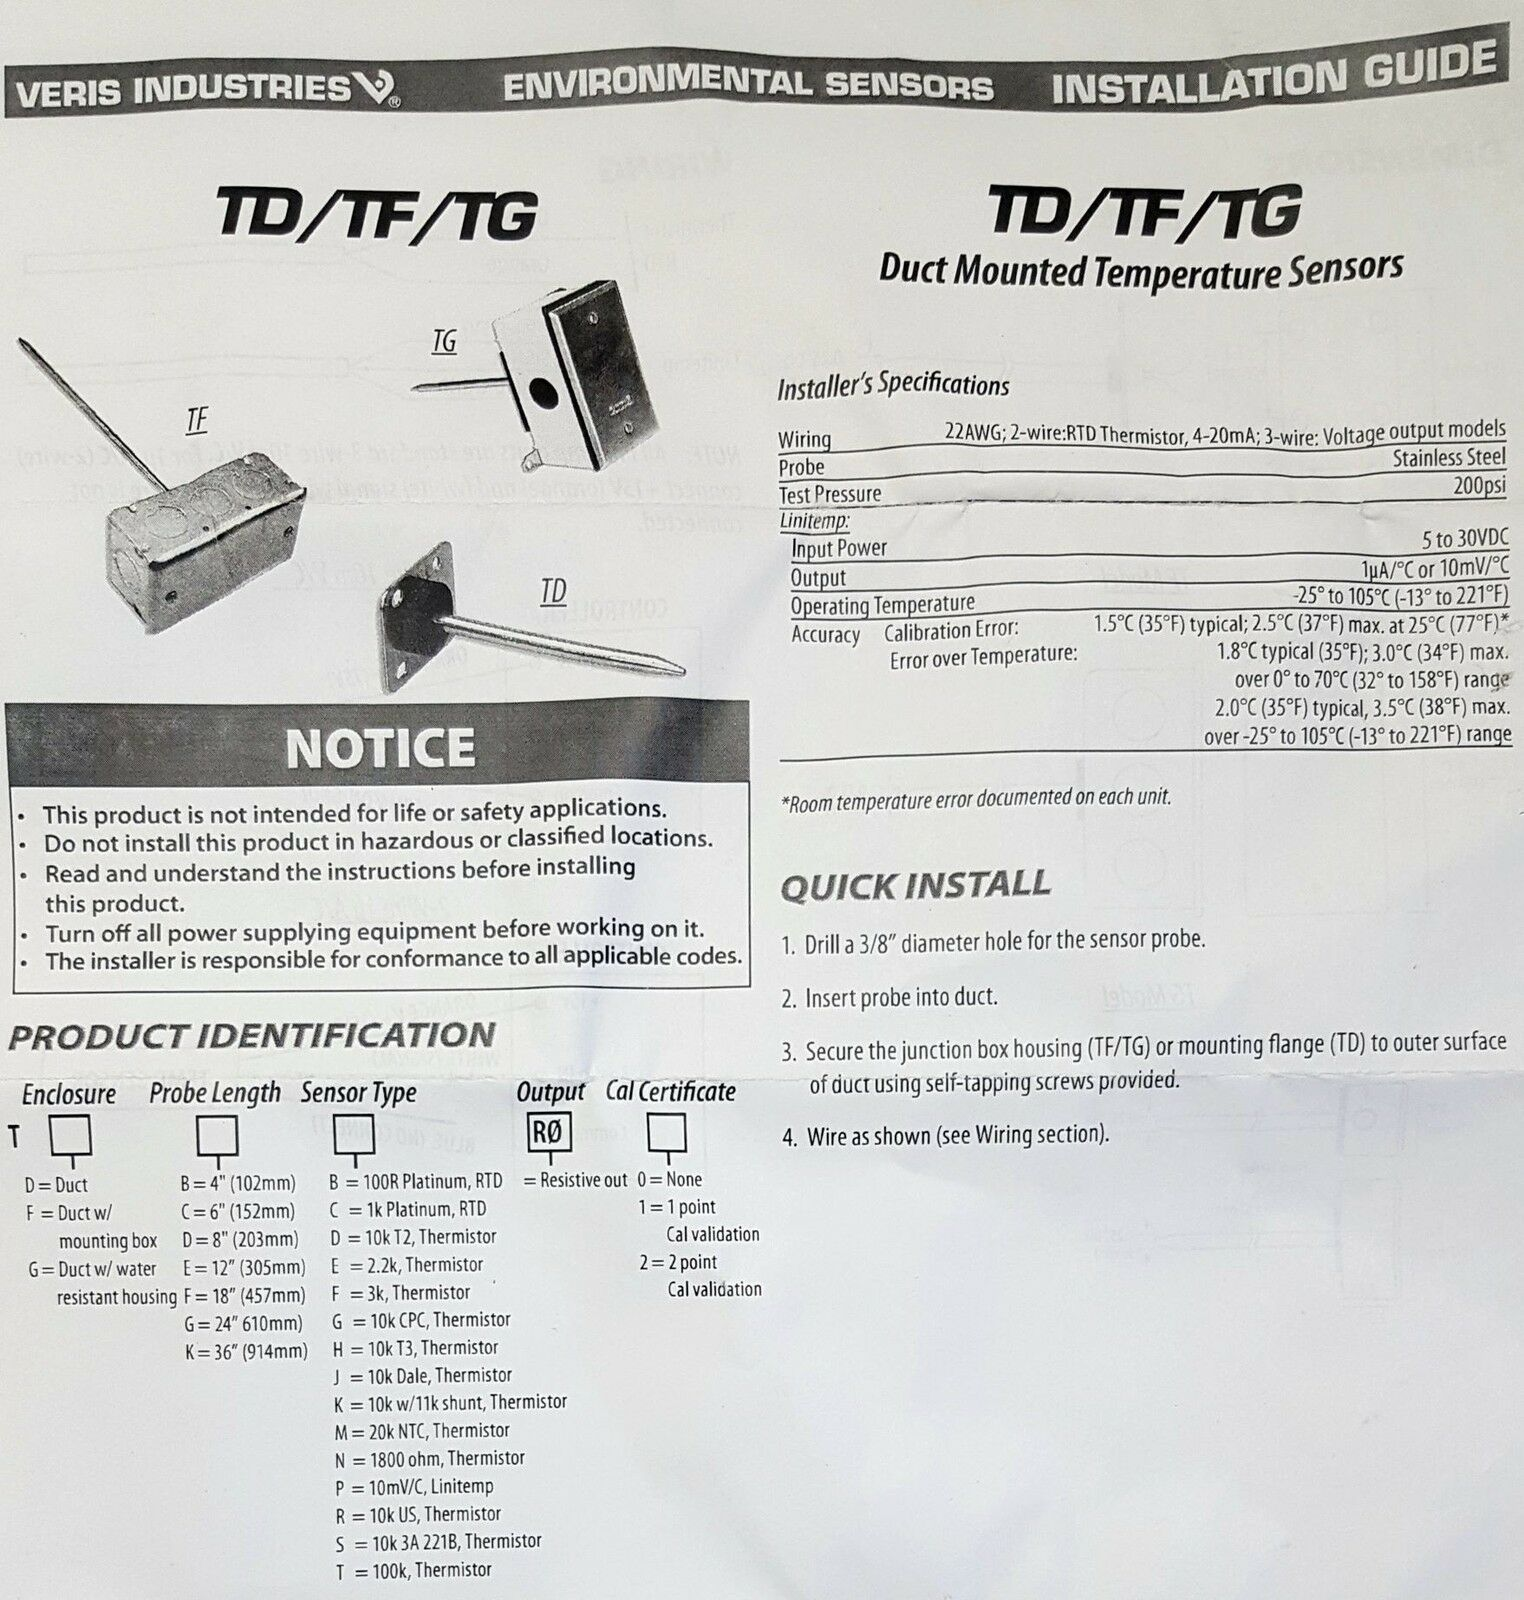 RTD Thermistor 22awg 2-wire Waterproof Unit Duct Mount Temperature ...